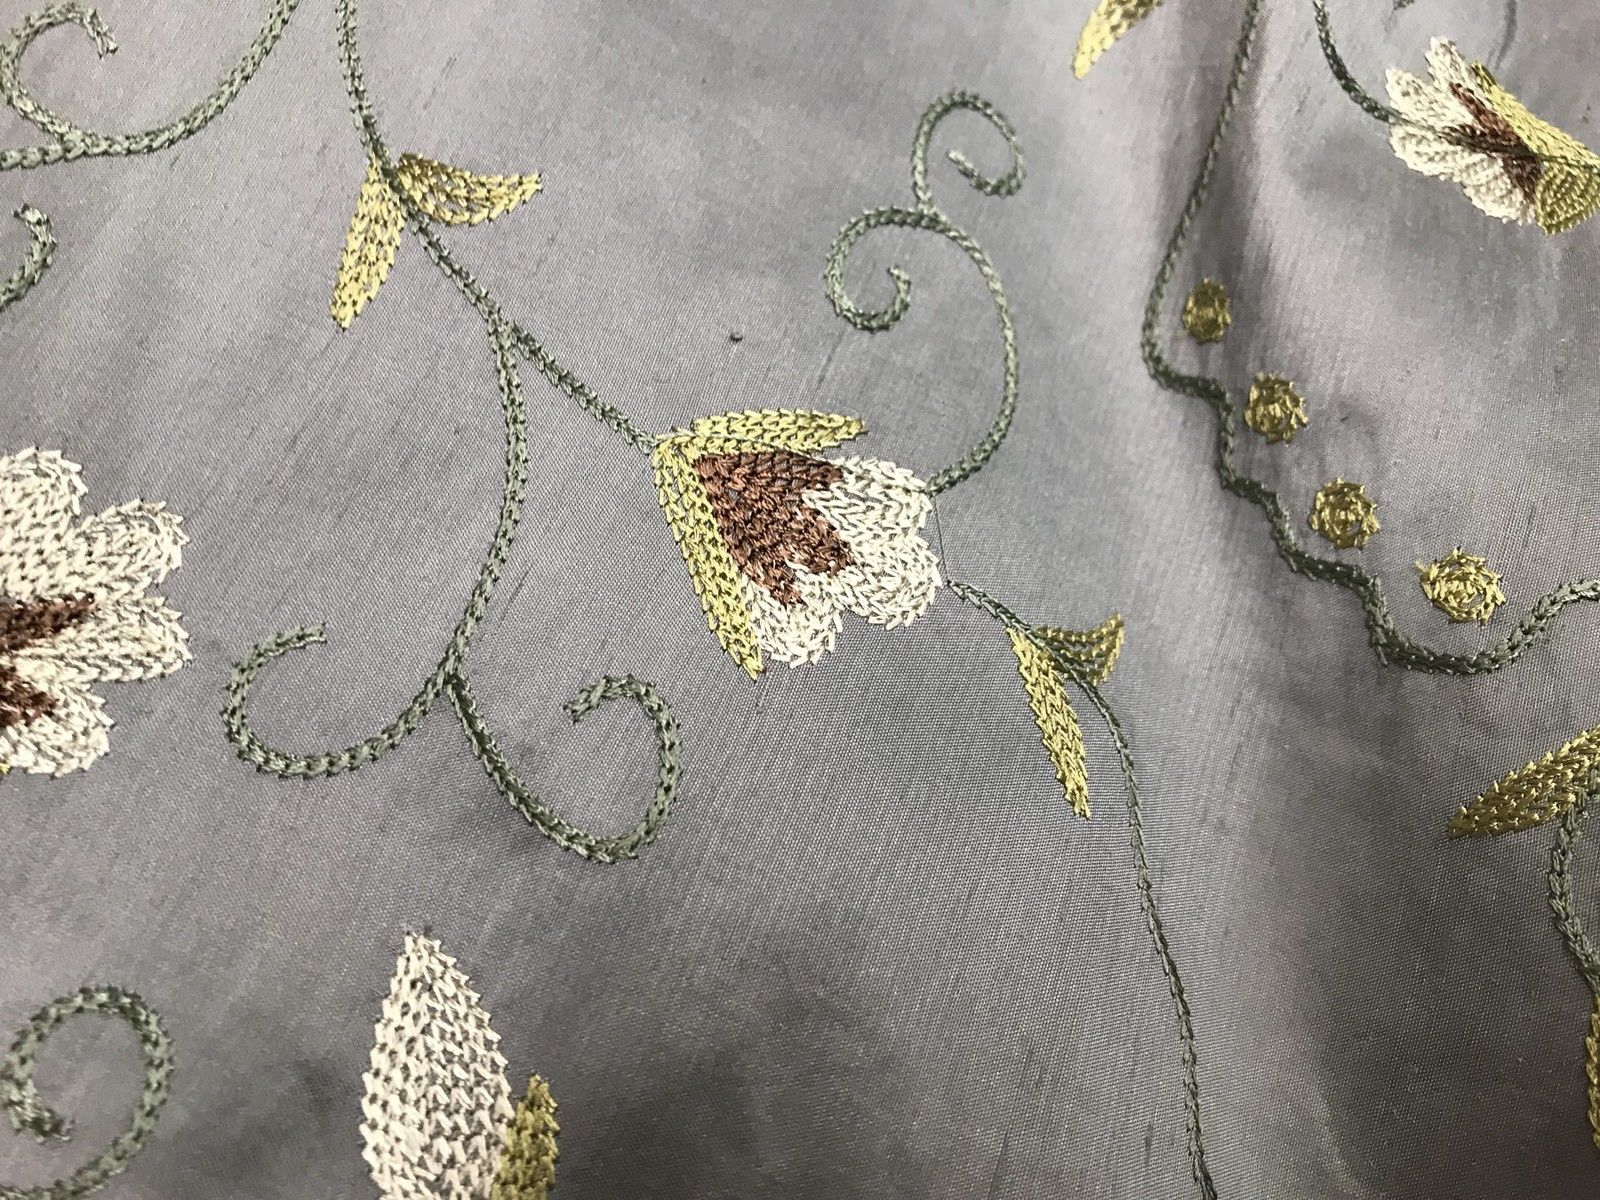 SALE! Designer 100% Silk Taffeta Embroidered Fabric - French Antique Blue - Fancy Styles Fabric Boutique